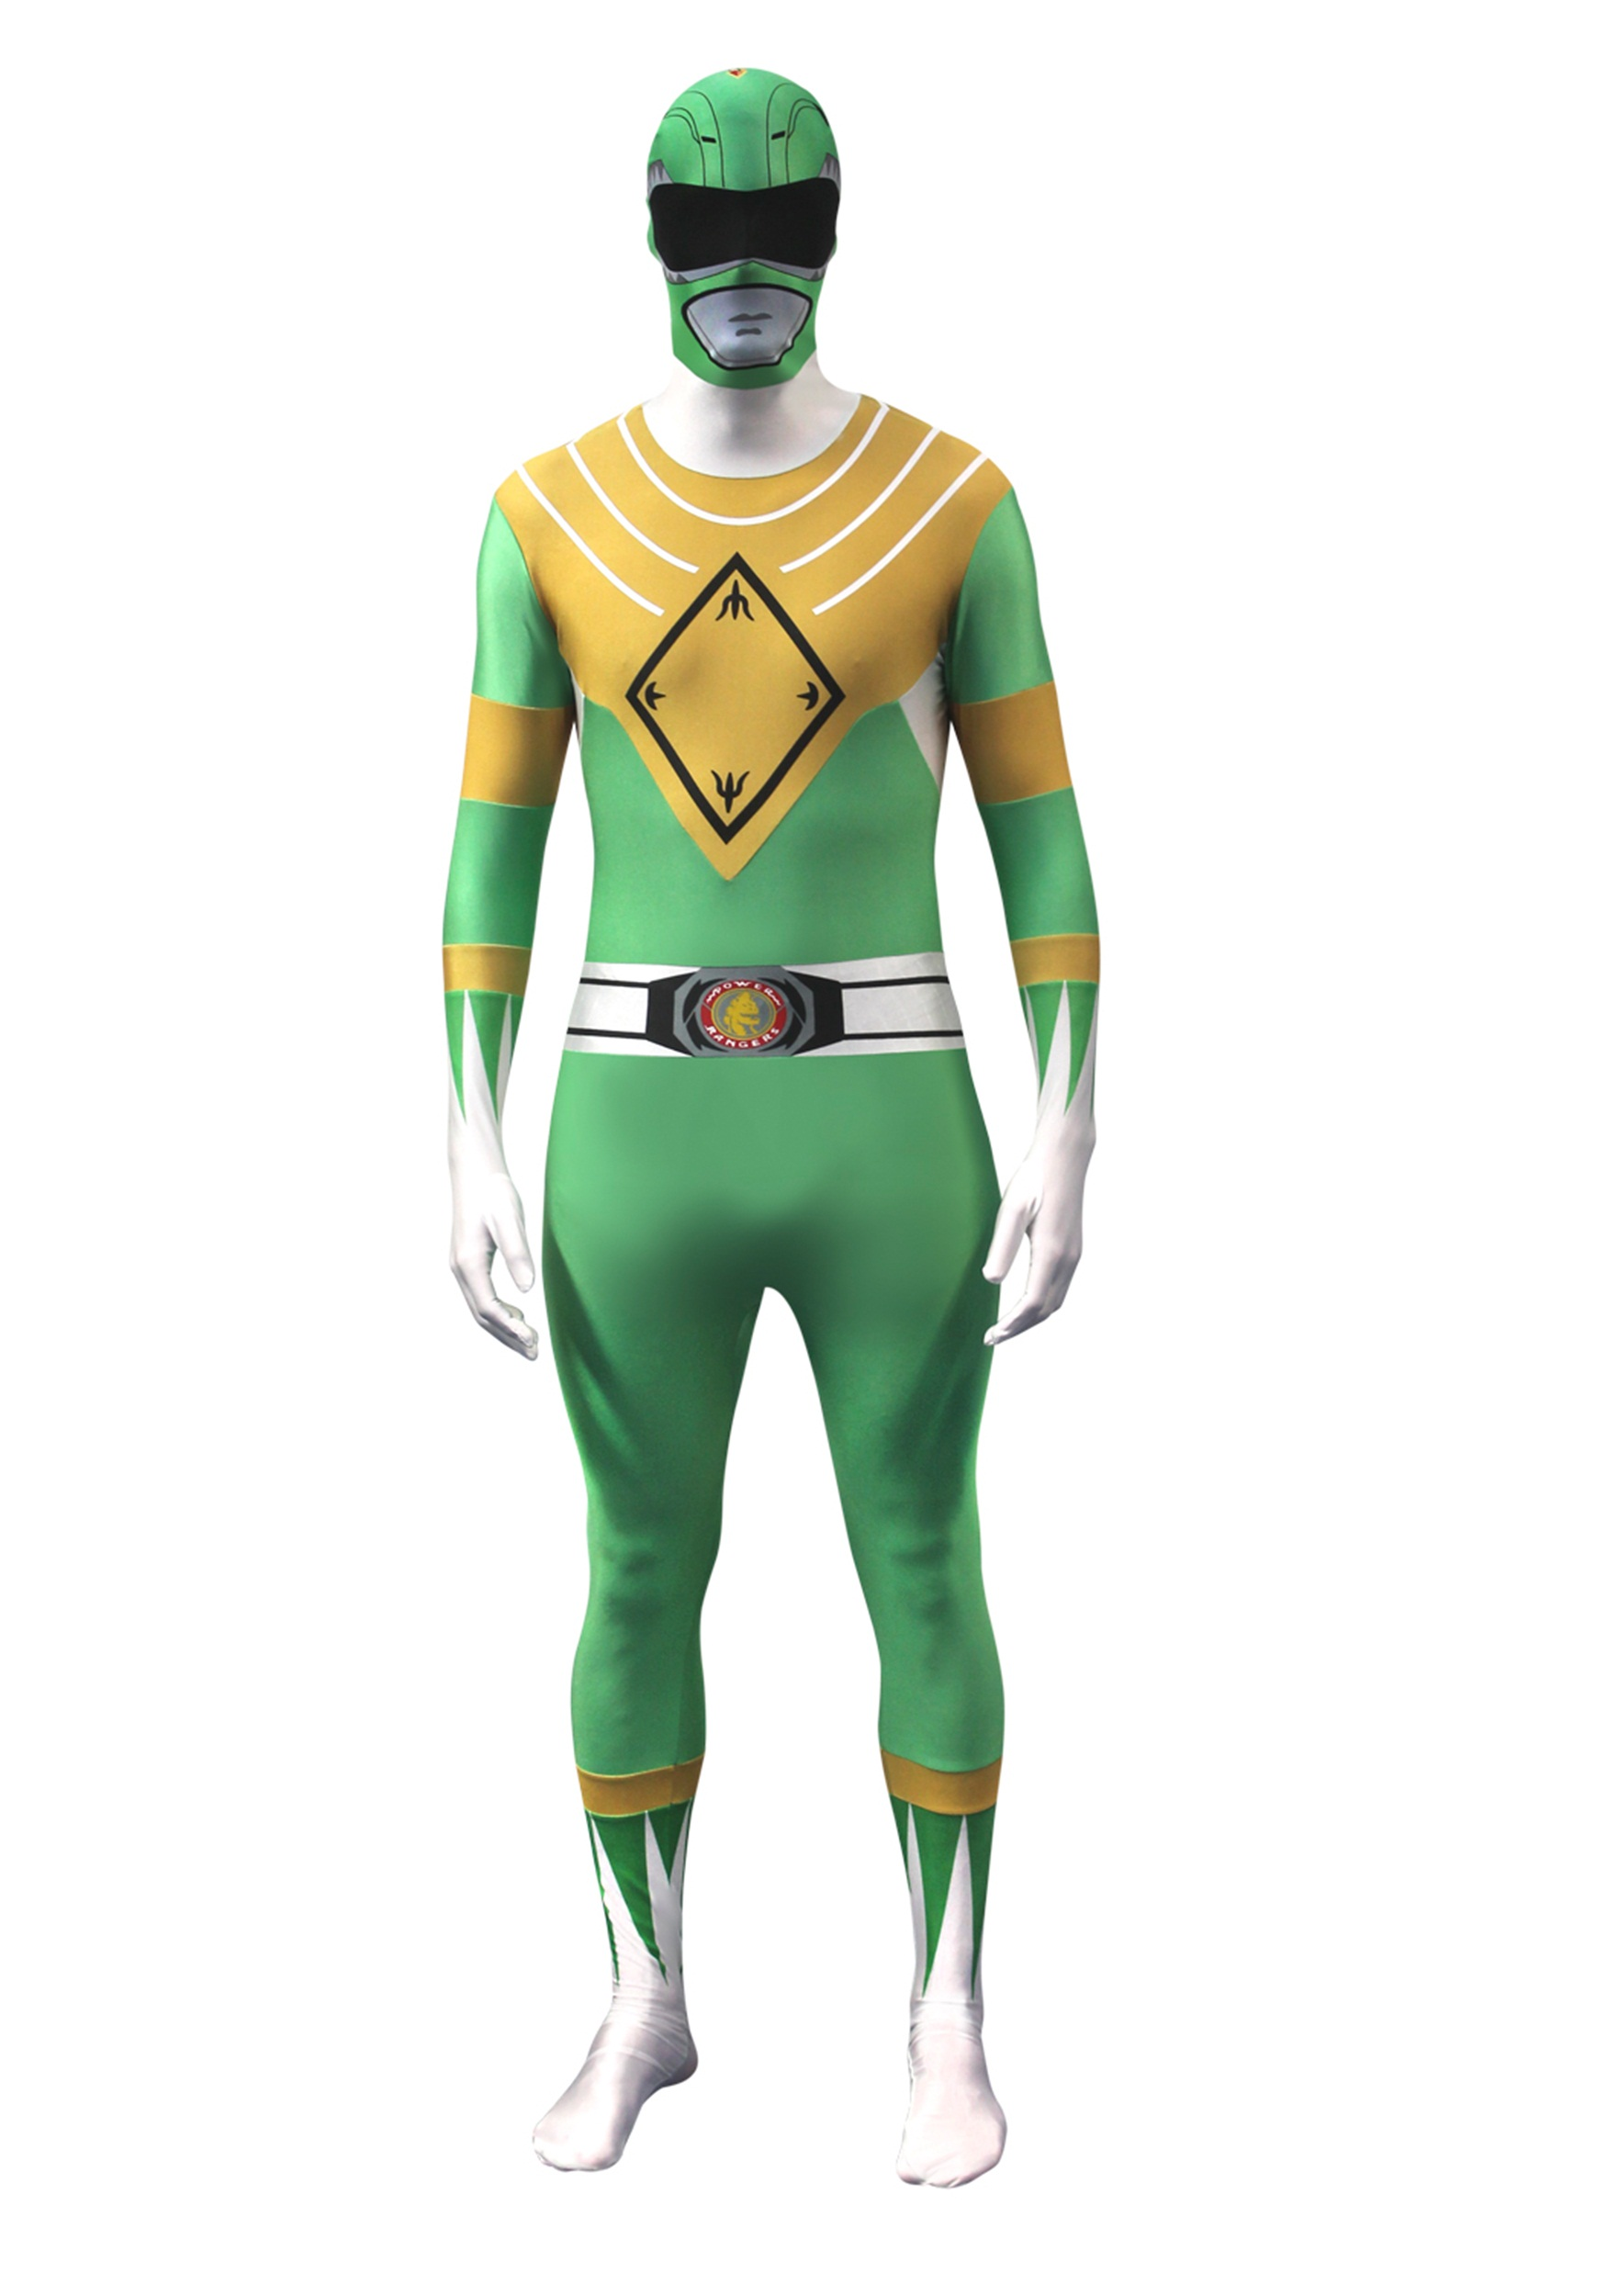 sc 1 st  Fun.com & Power Rangers: Green Ranger Morphsuit